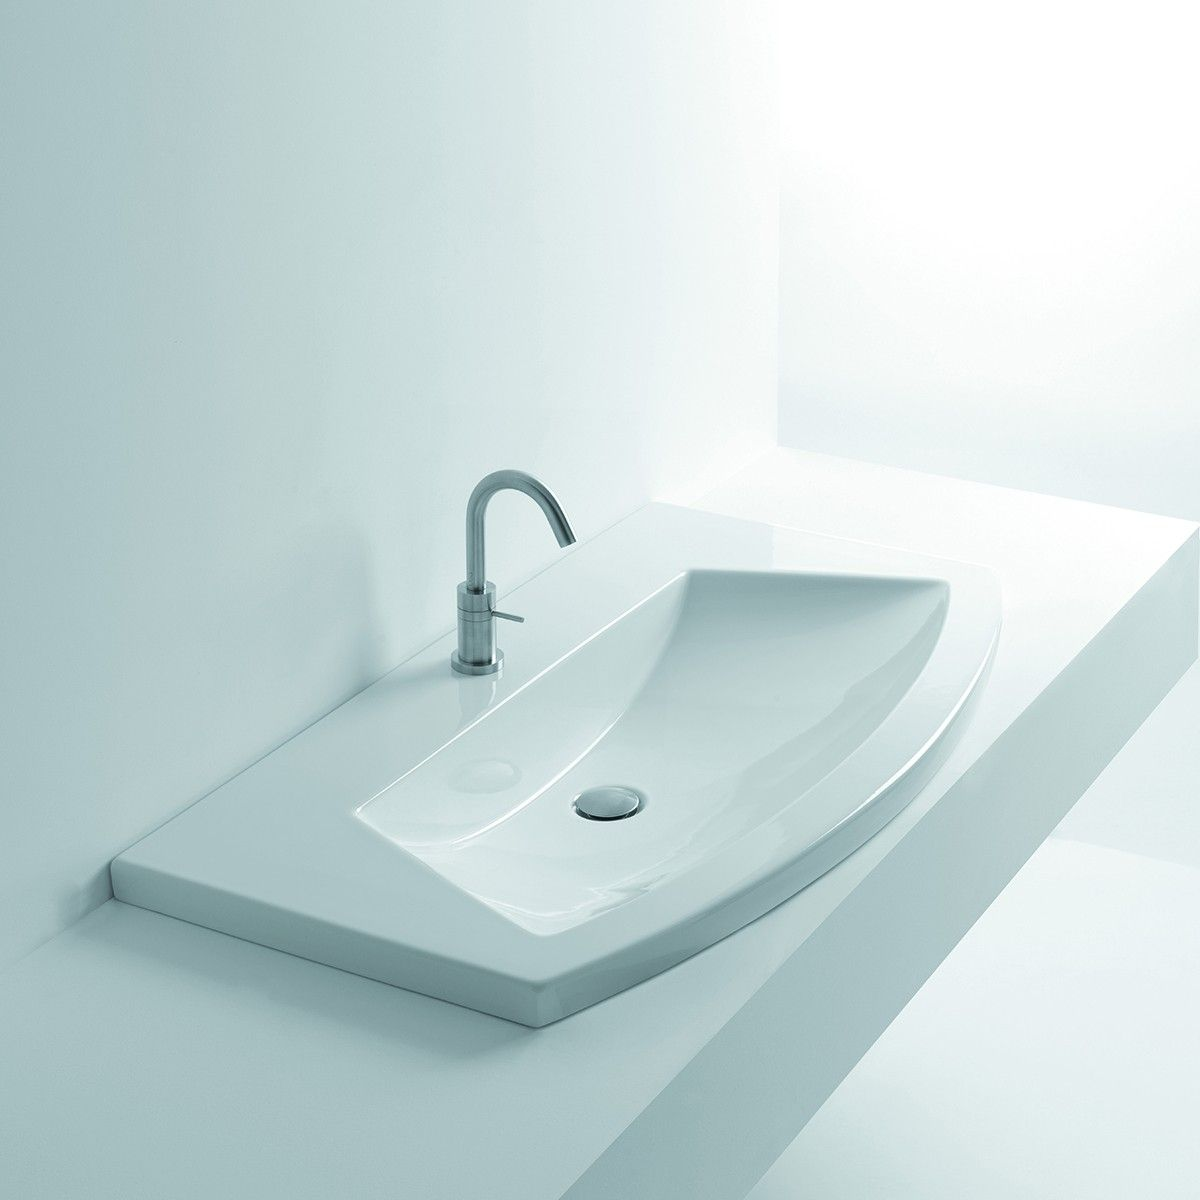 Ws Bath Collections Glam 100 Wall Mounted Drop In Bathroom Sink